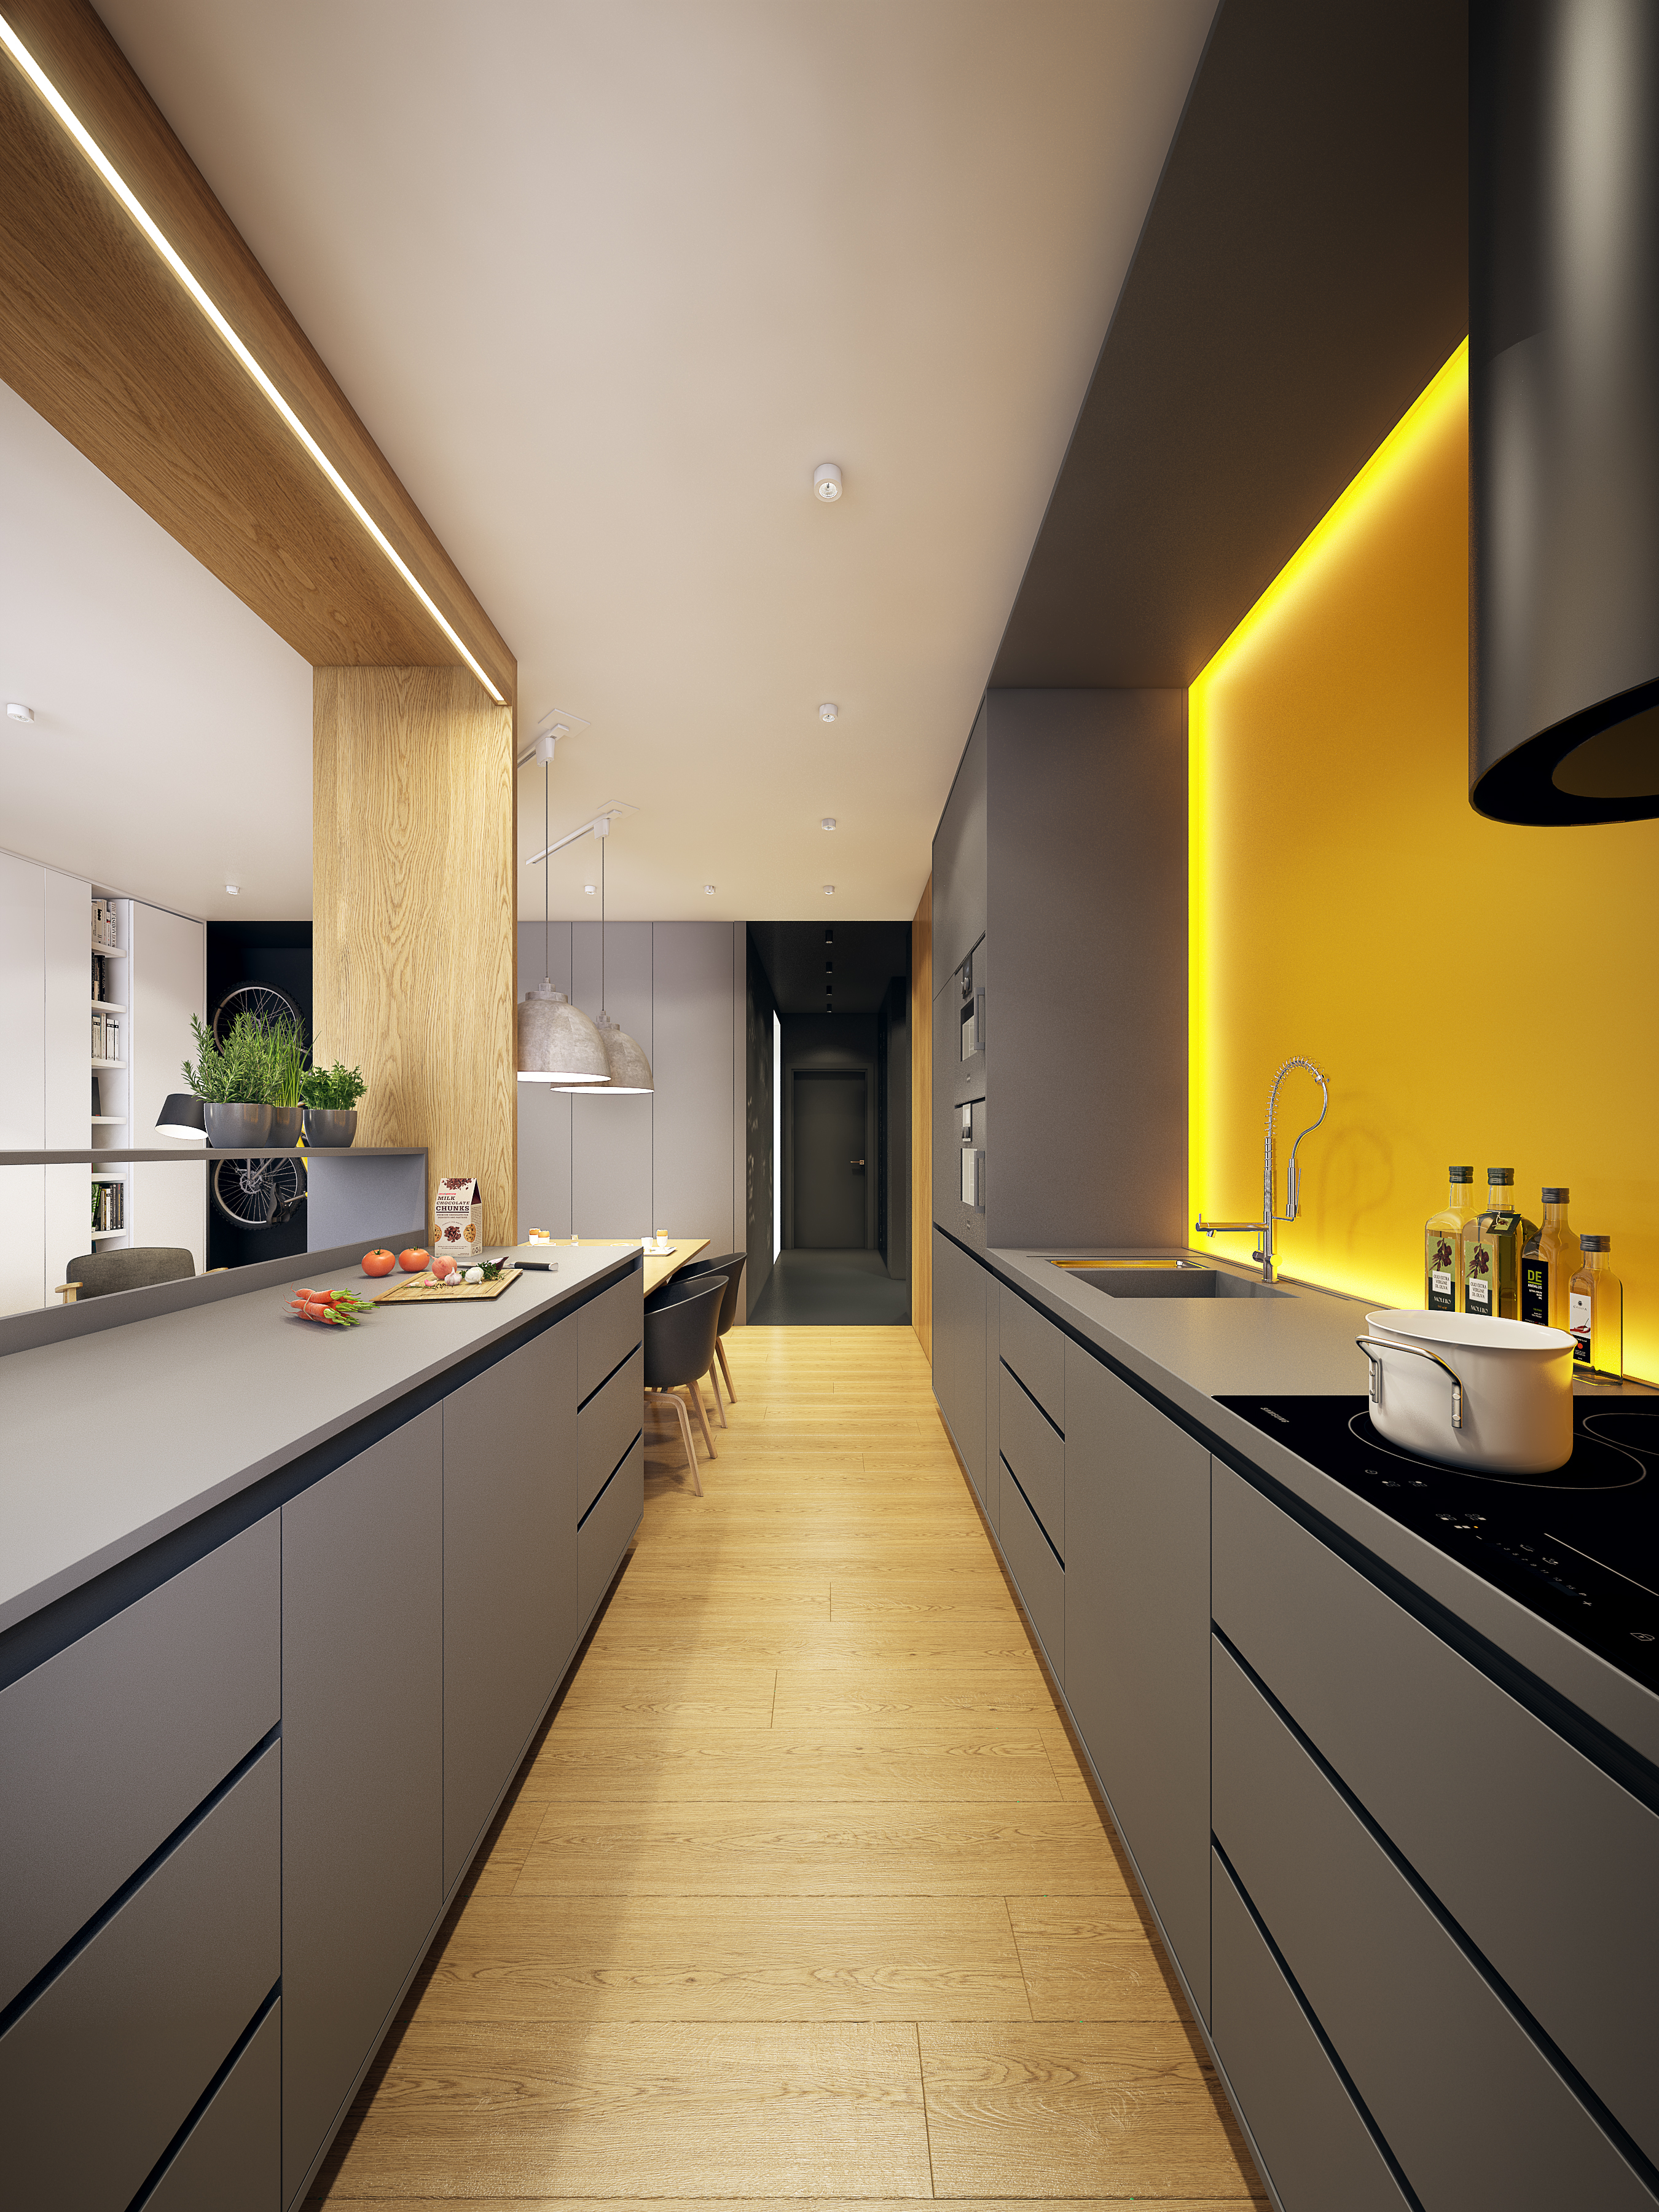 GJ-Kitchens-modren-and-contemporary-2-20180815033653852